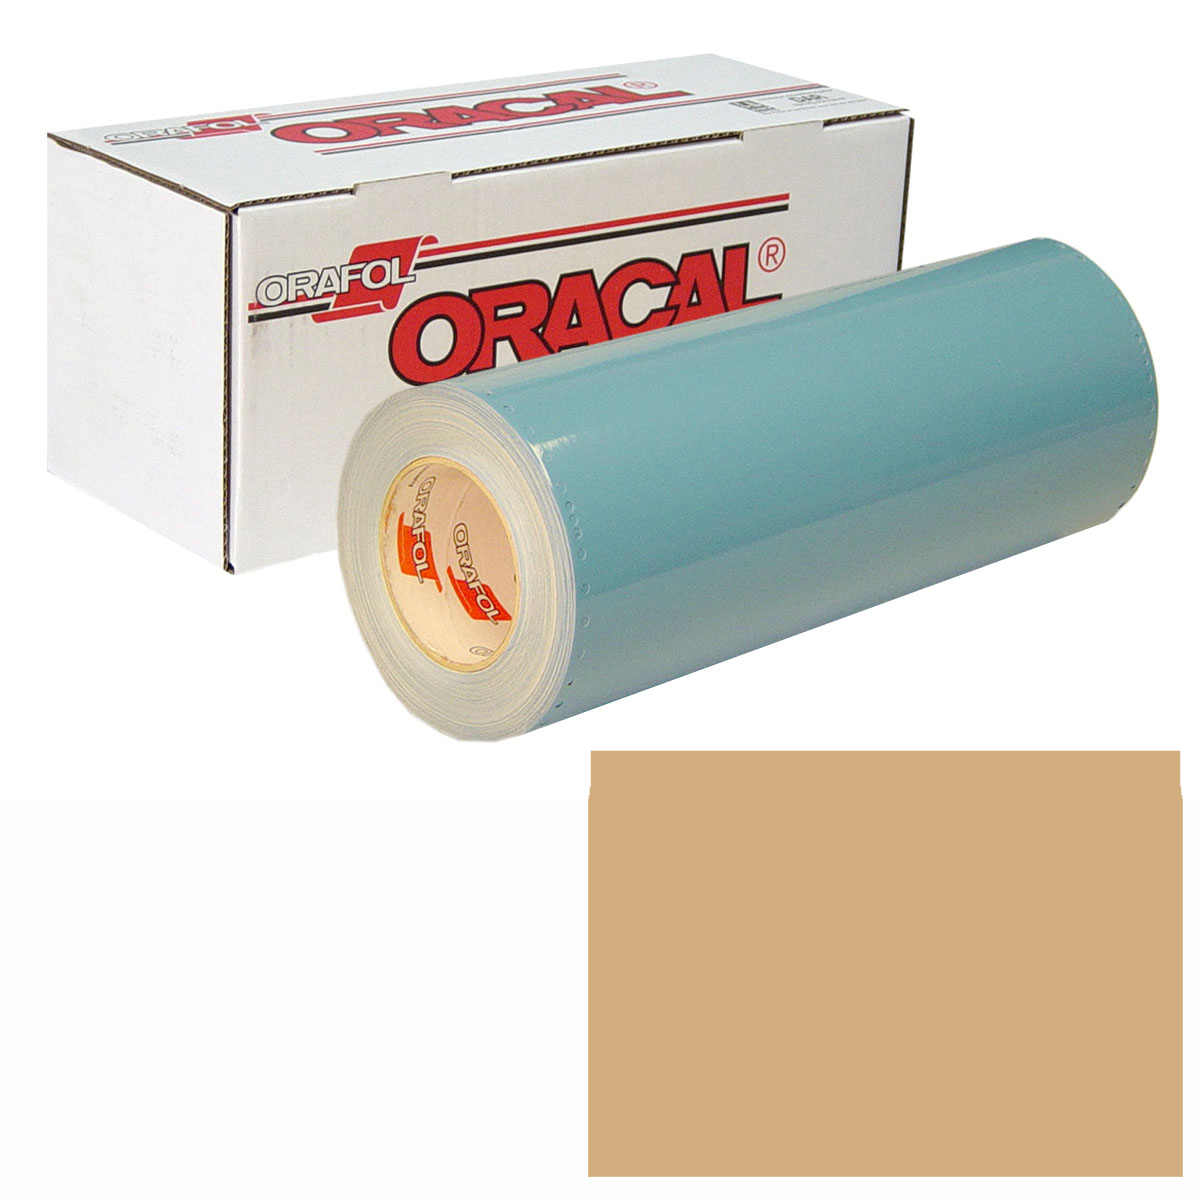 ORACAL 751 Unp 24in X 50yd 081 Light Brown